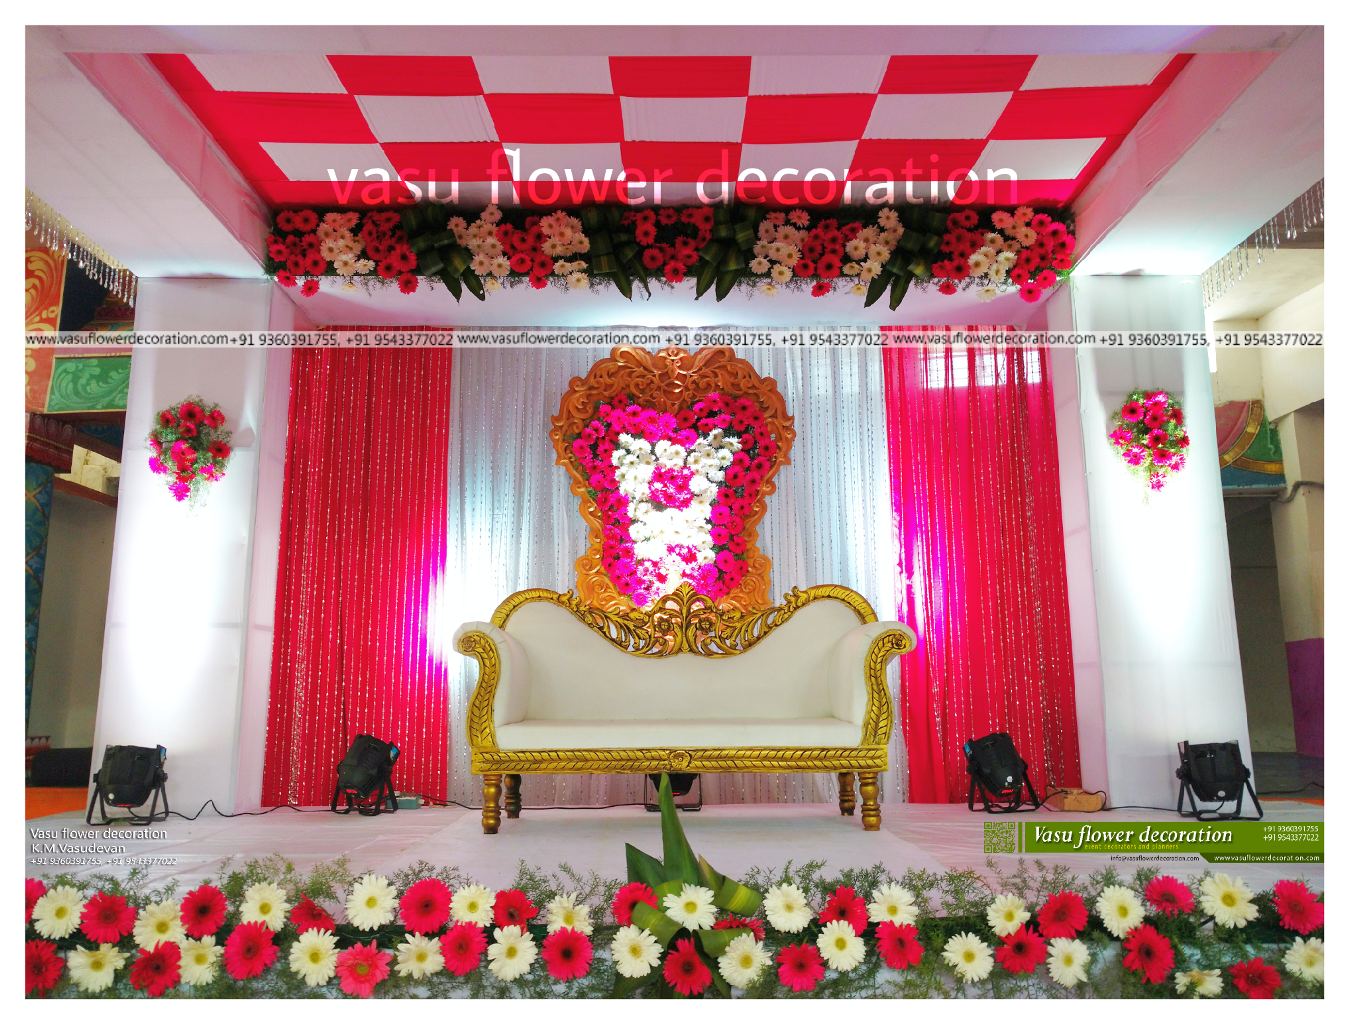 Vasu flower decoration for Decoration decoration